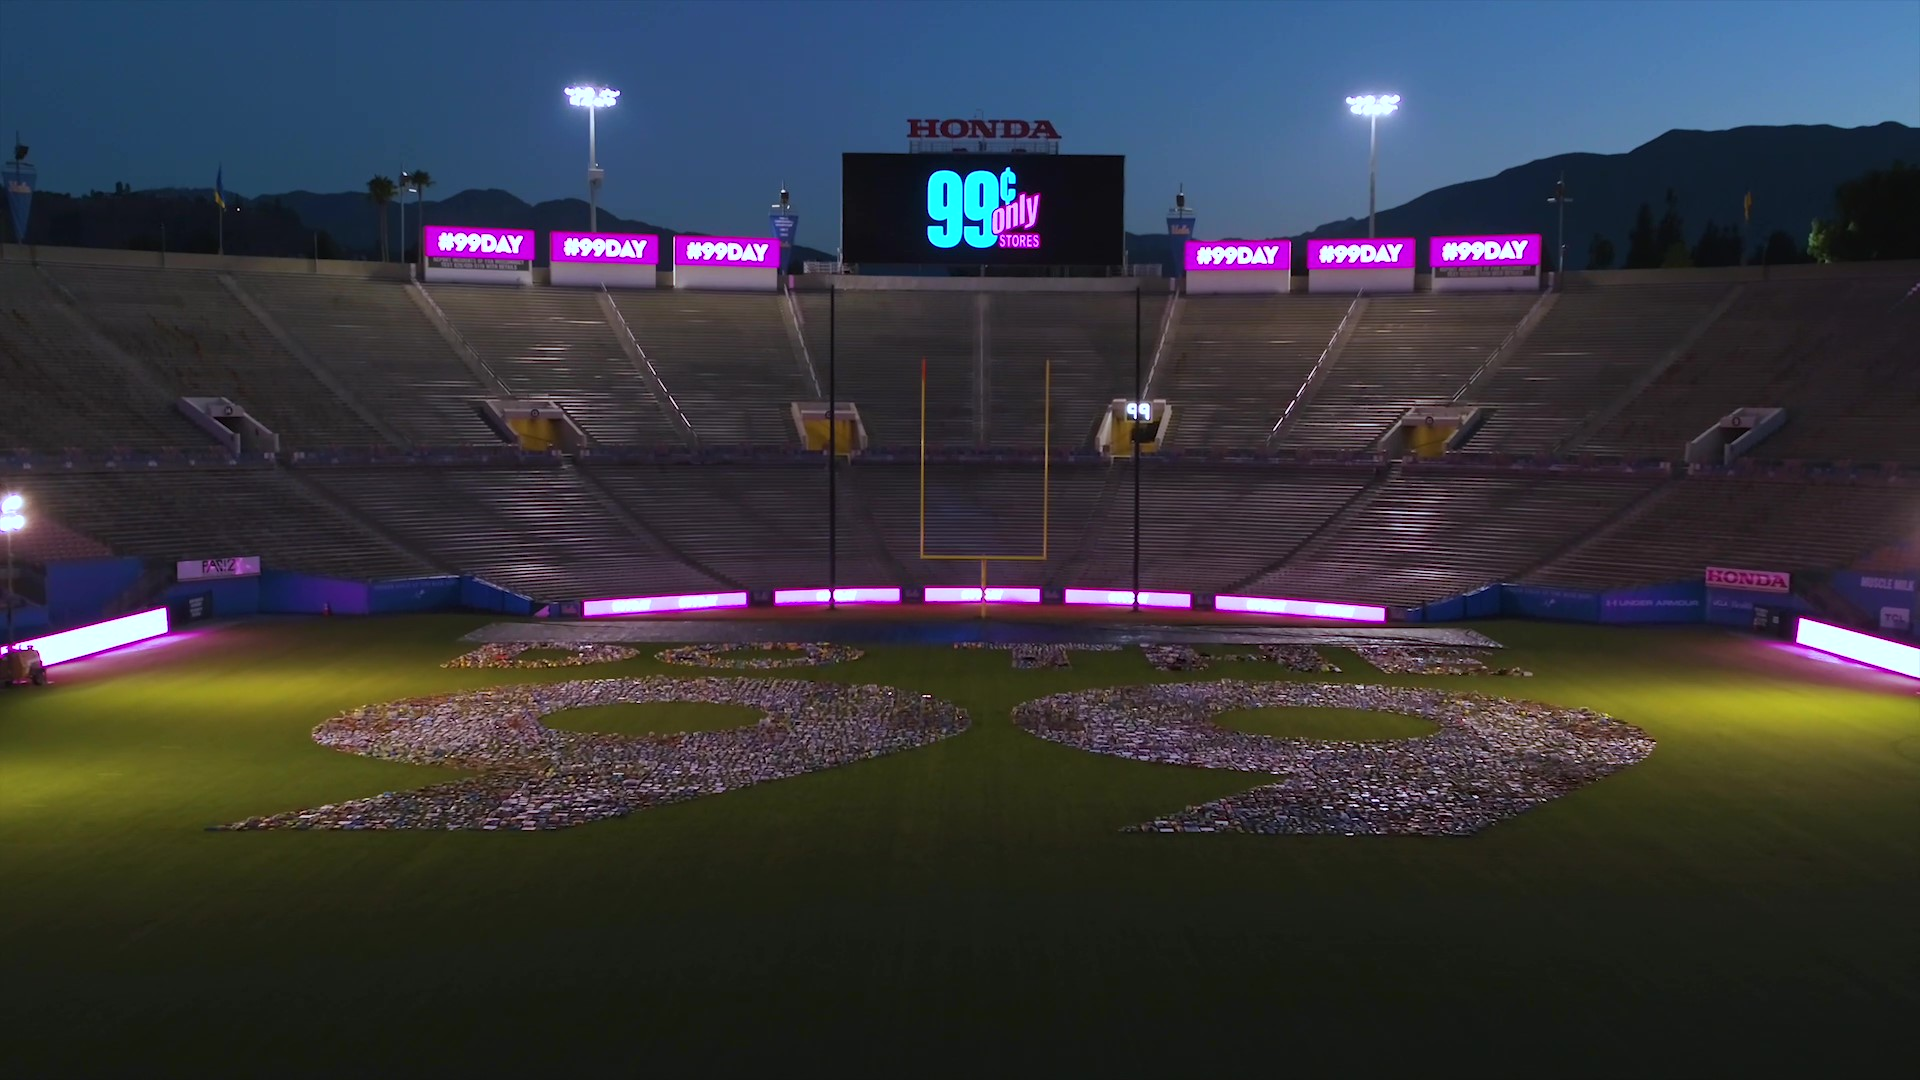 The Guinness World Records title for the Largest packaged product number was set by the 99 Cents Only Stores in under 24 hours, with over 100 people at the Rose Bowl Stadium Field on Sept. 9 for #99Day.